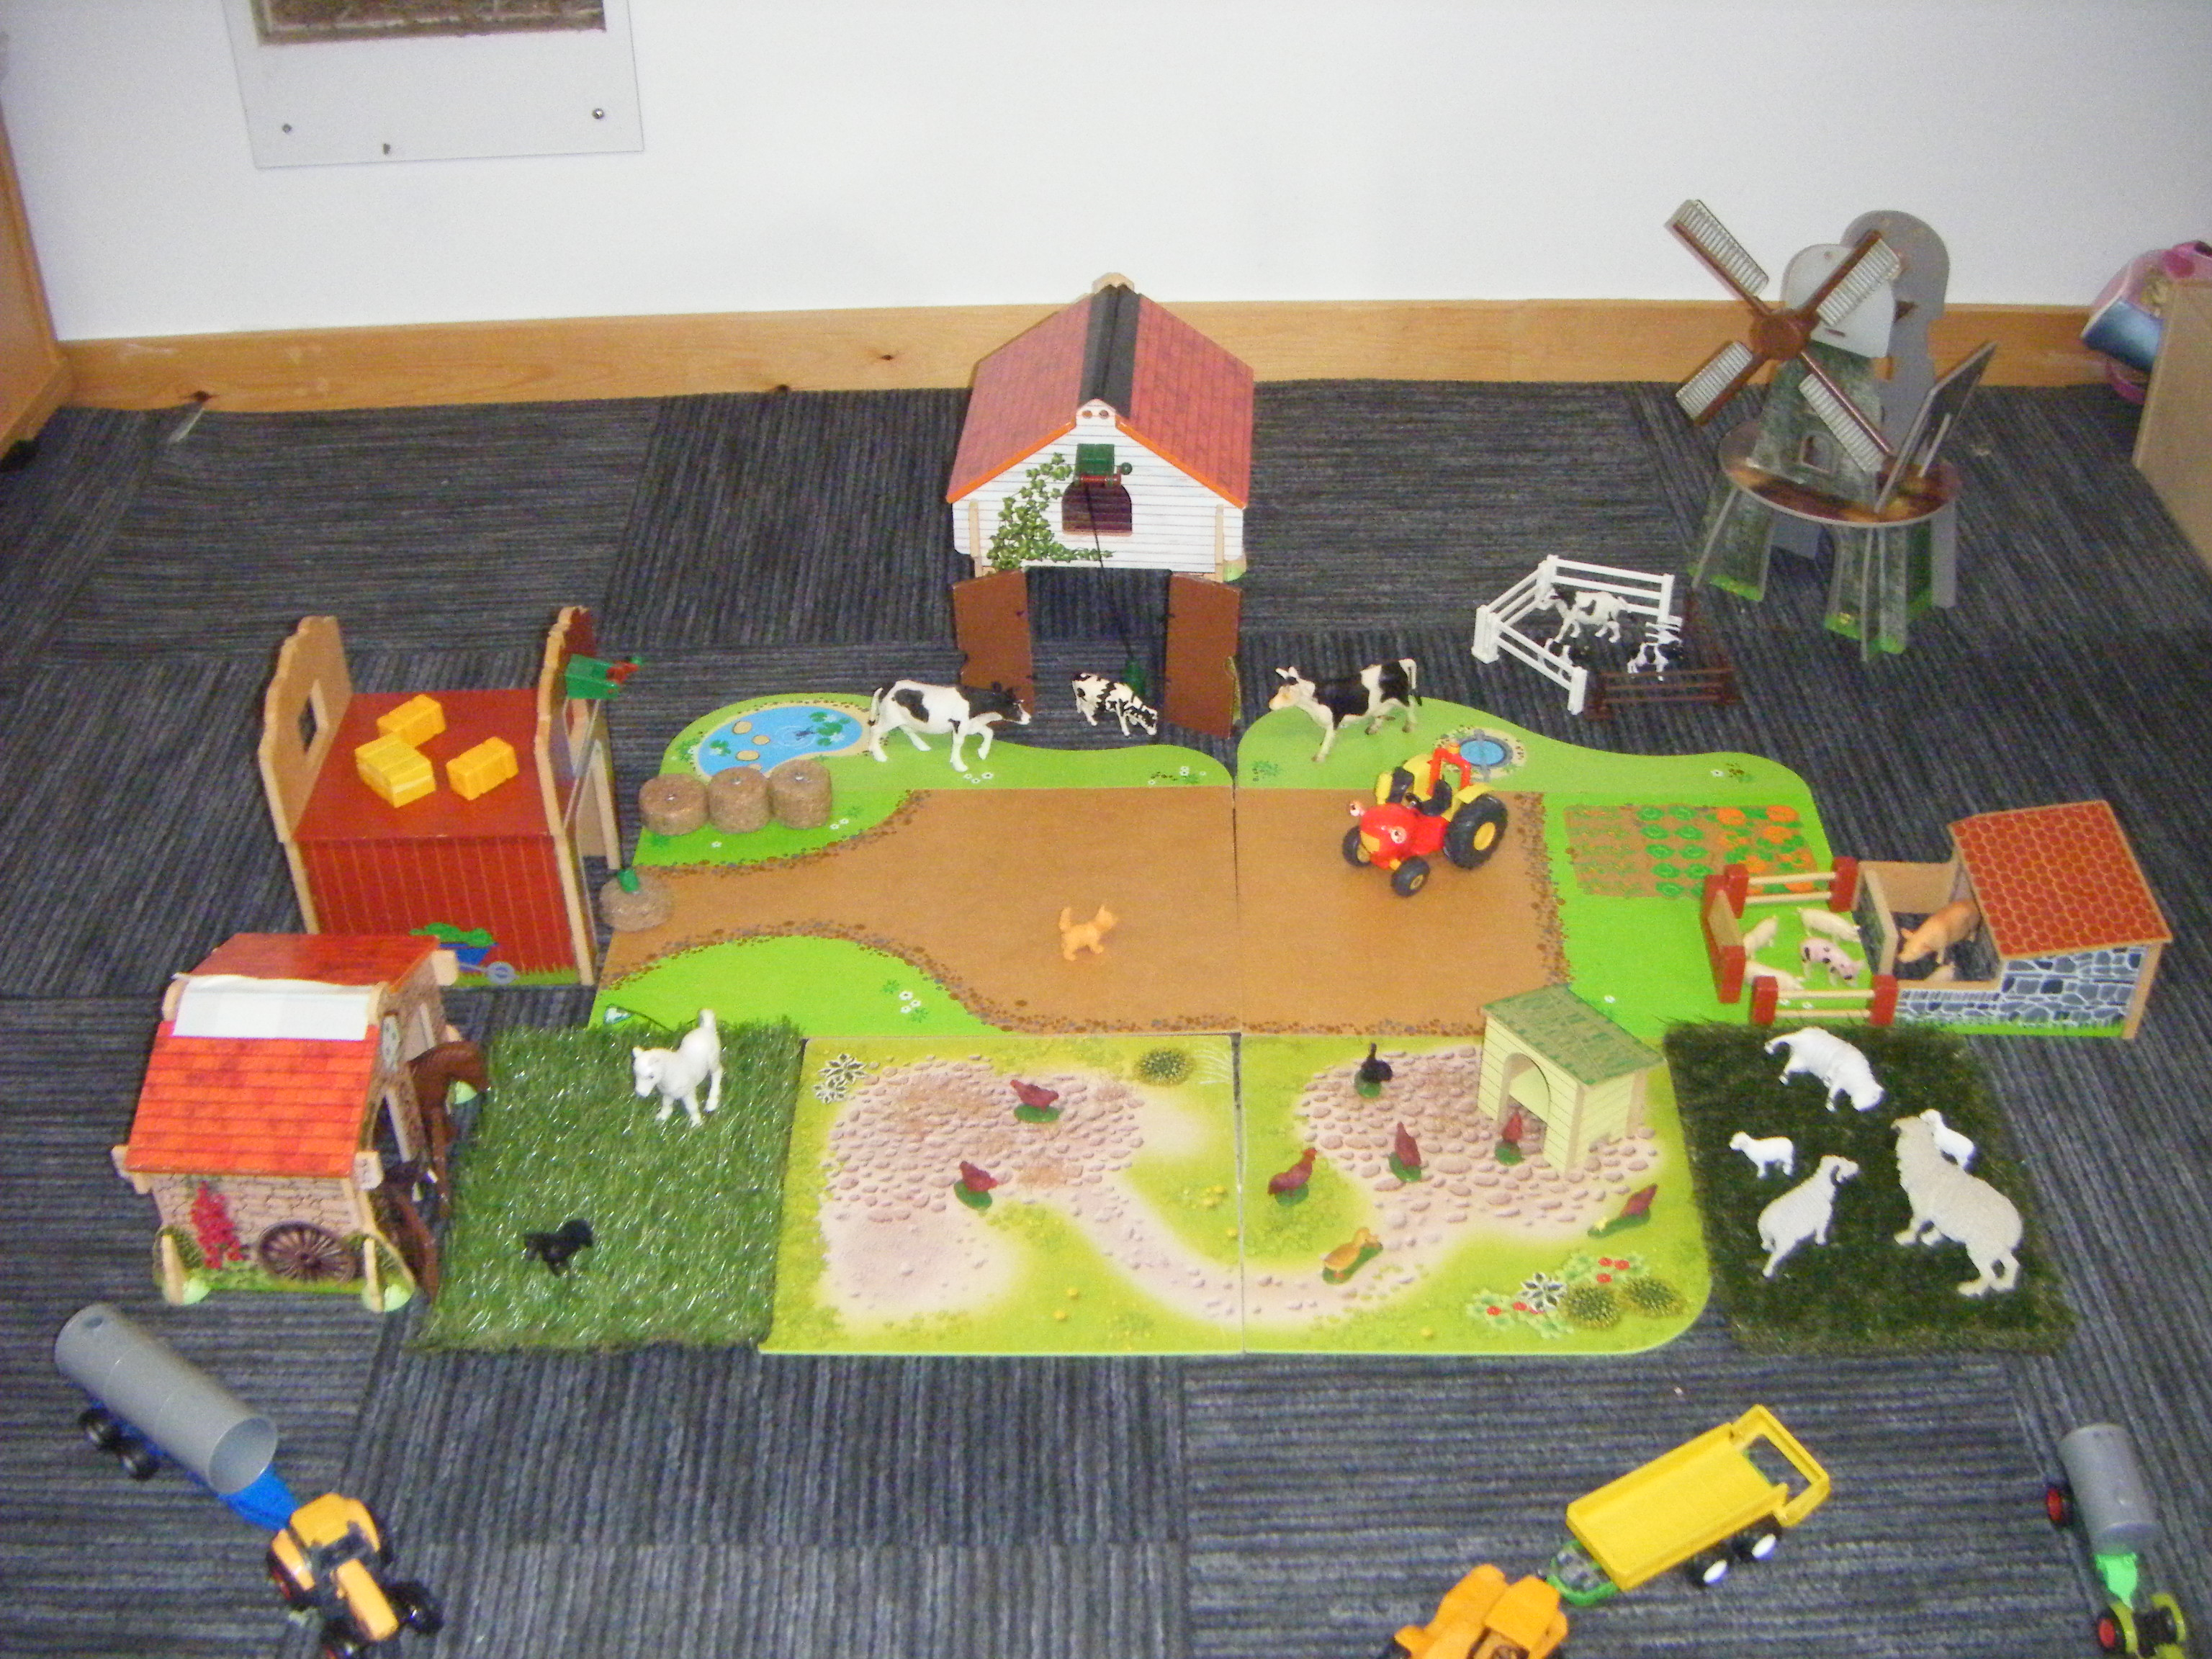 Farm yard - small world play